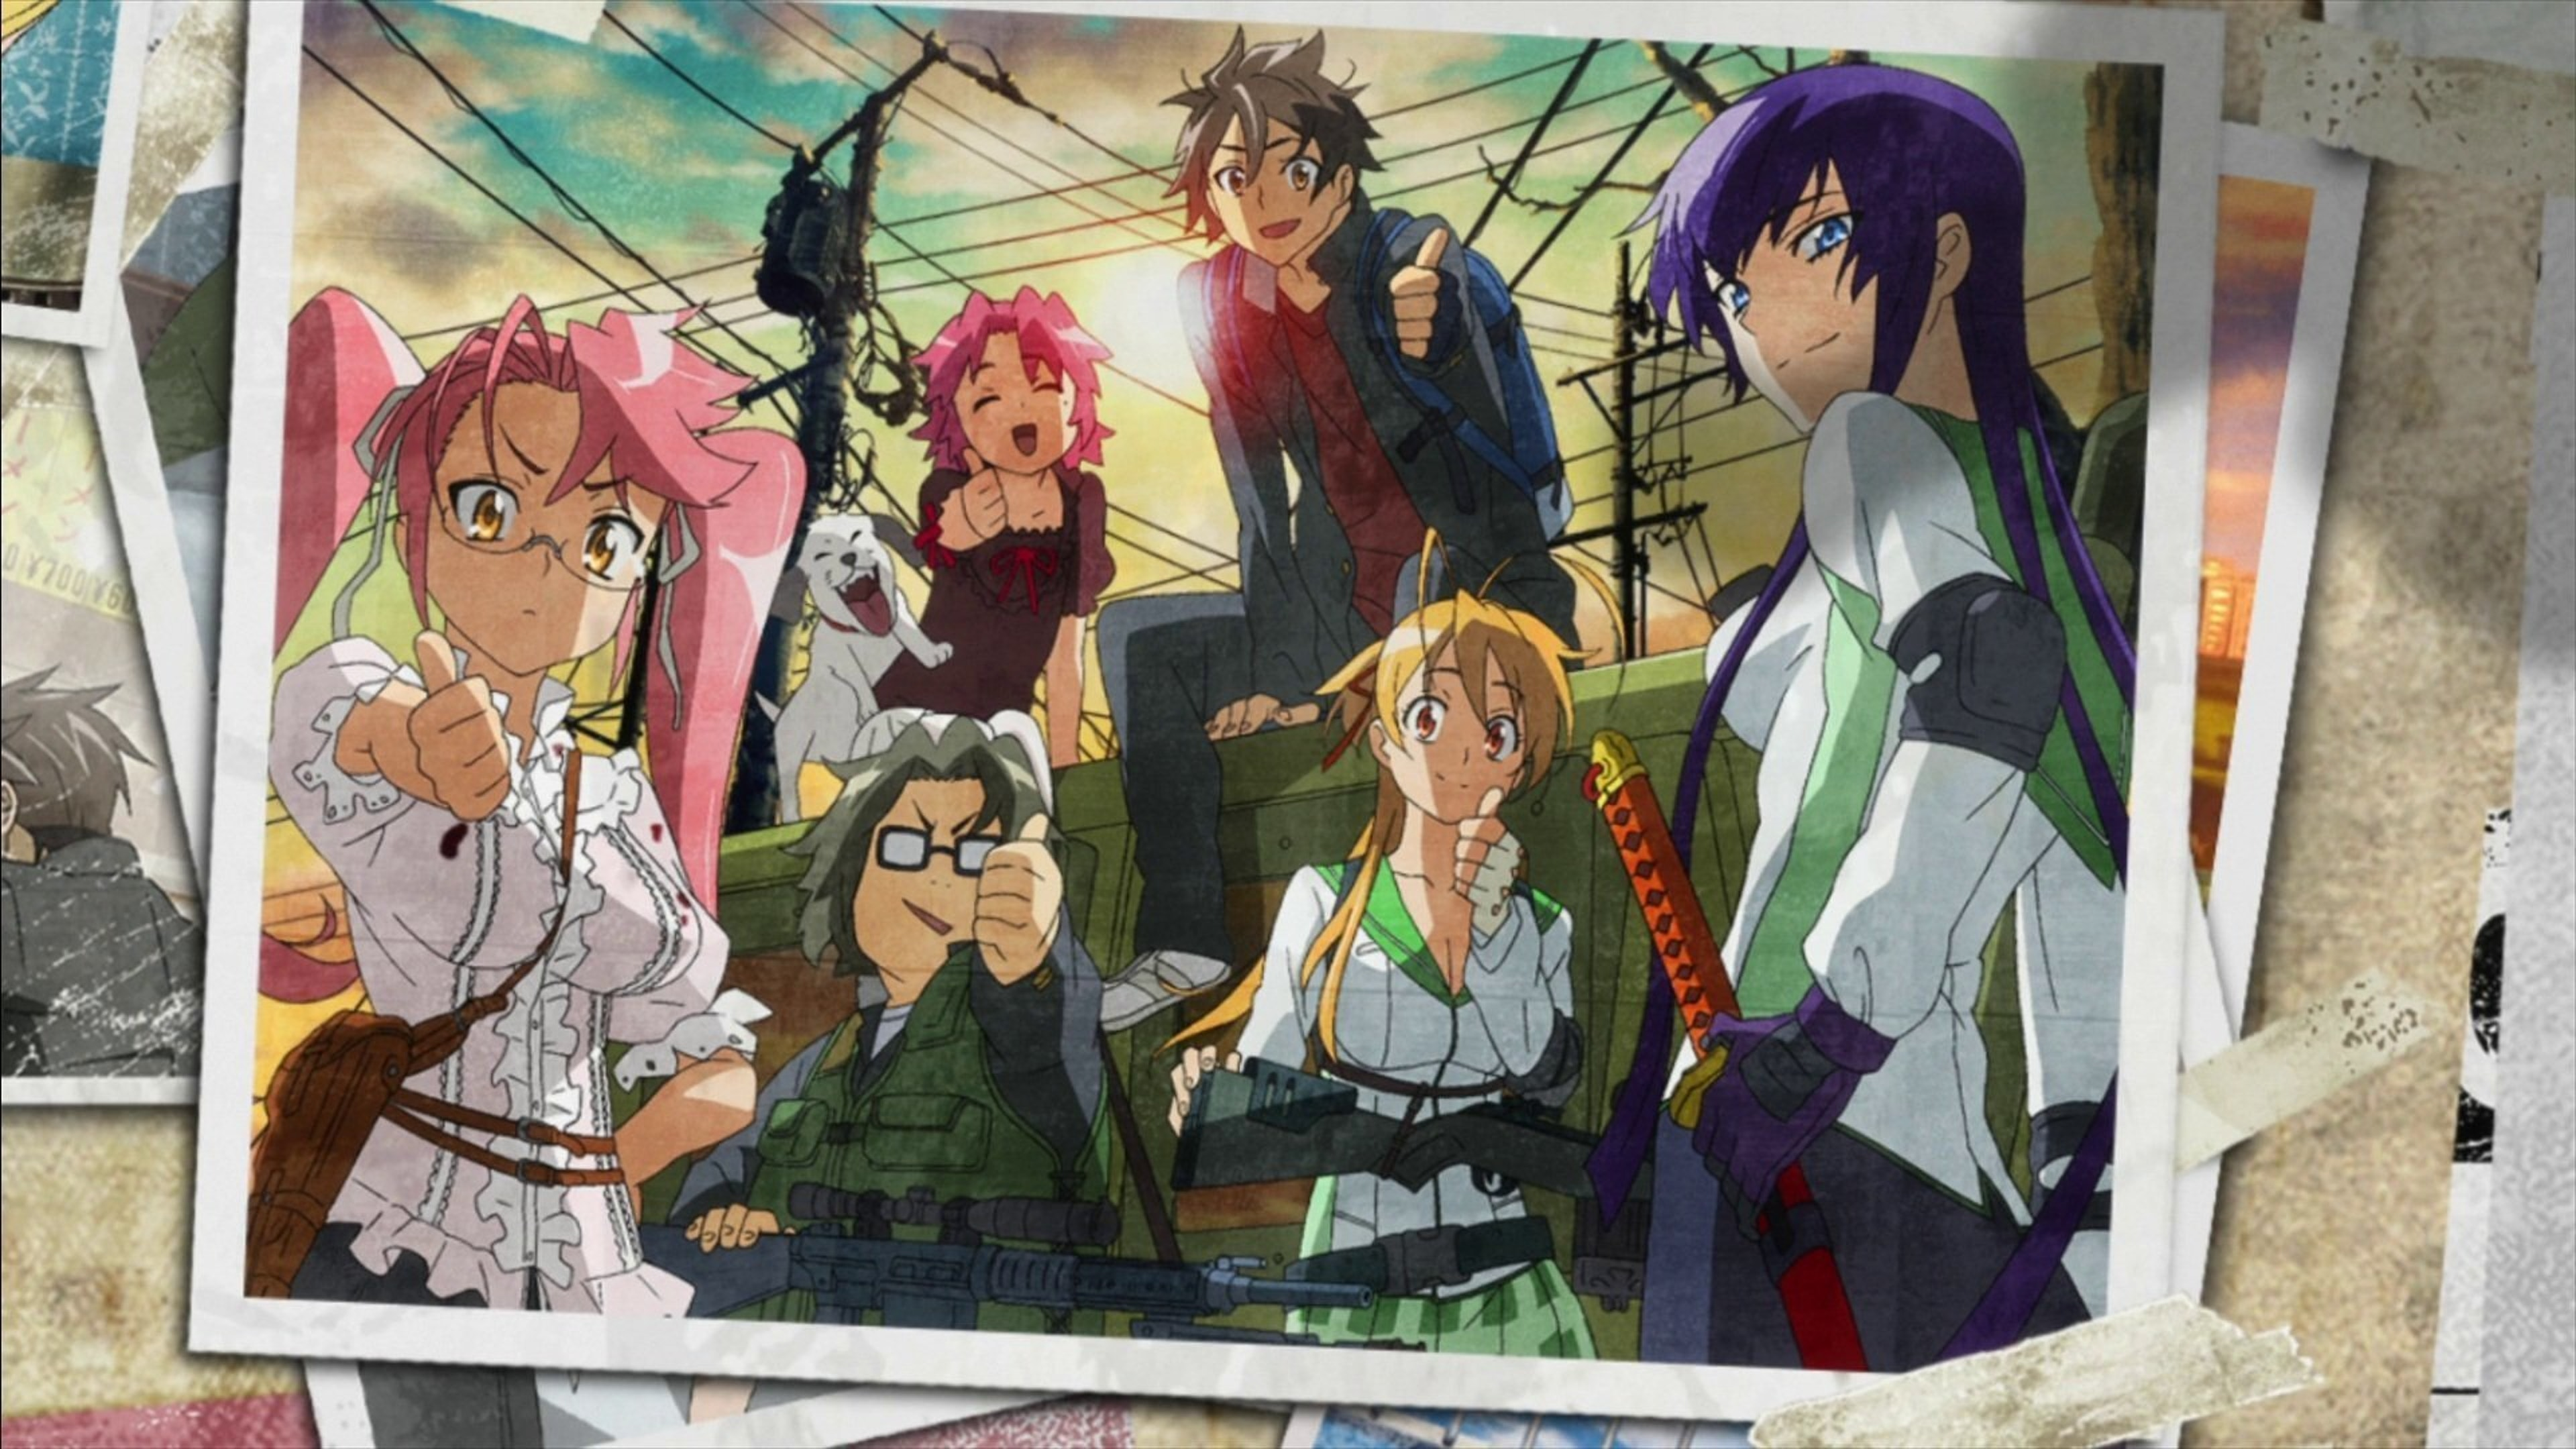 The core group in high school of the dead